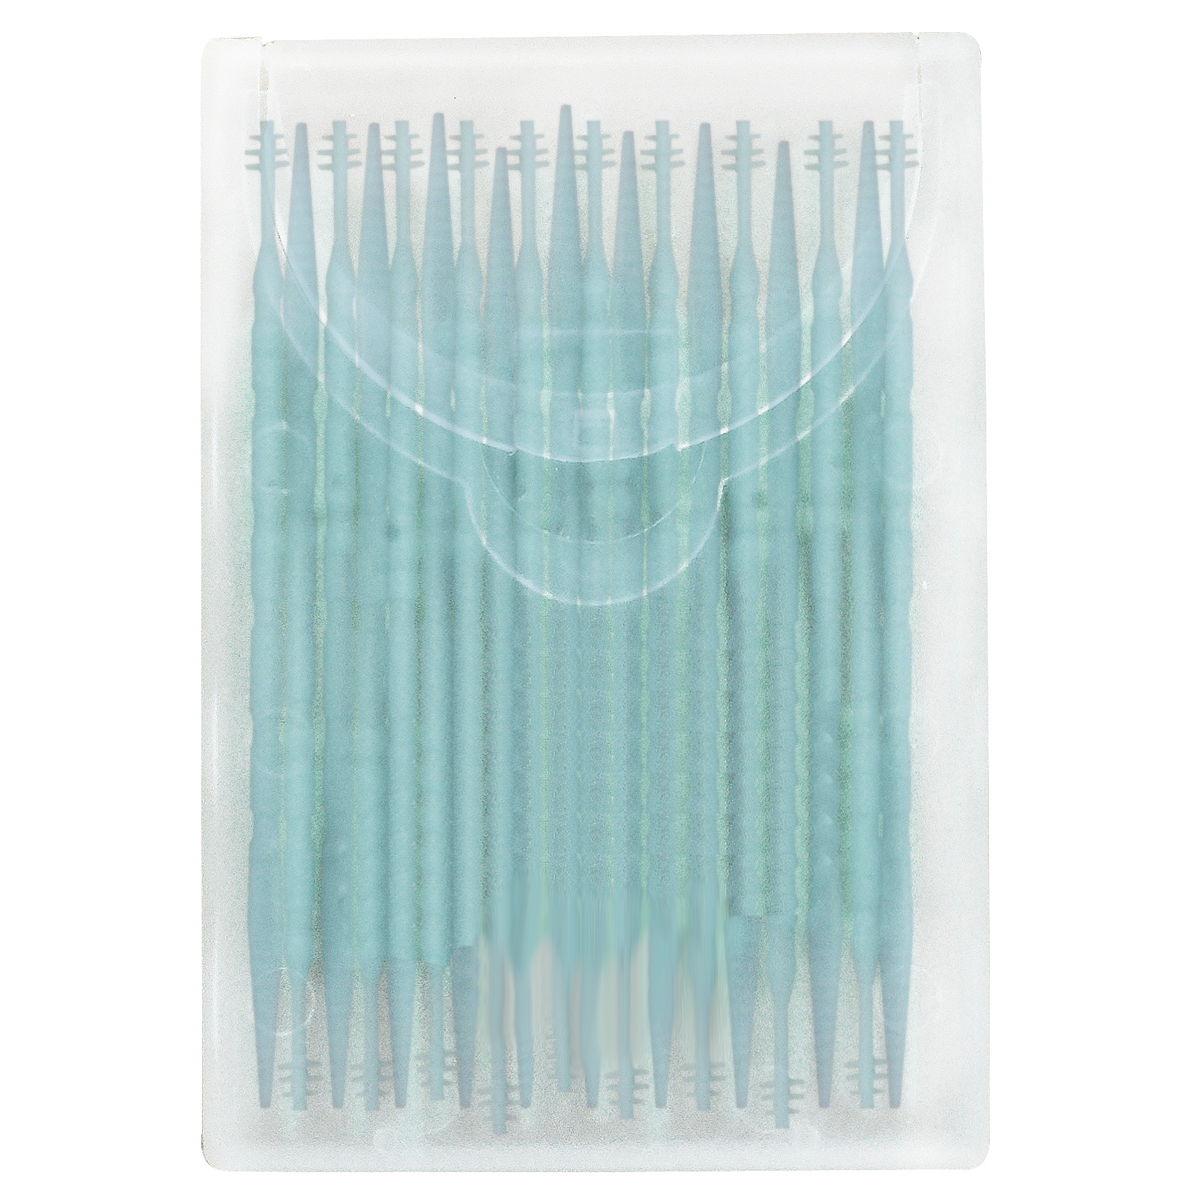 Frosted Toothpicks in a Case